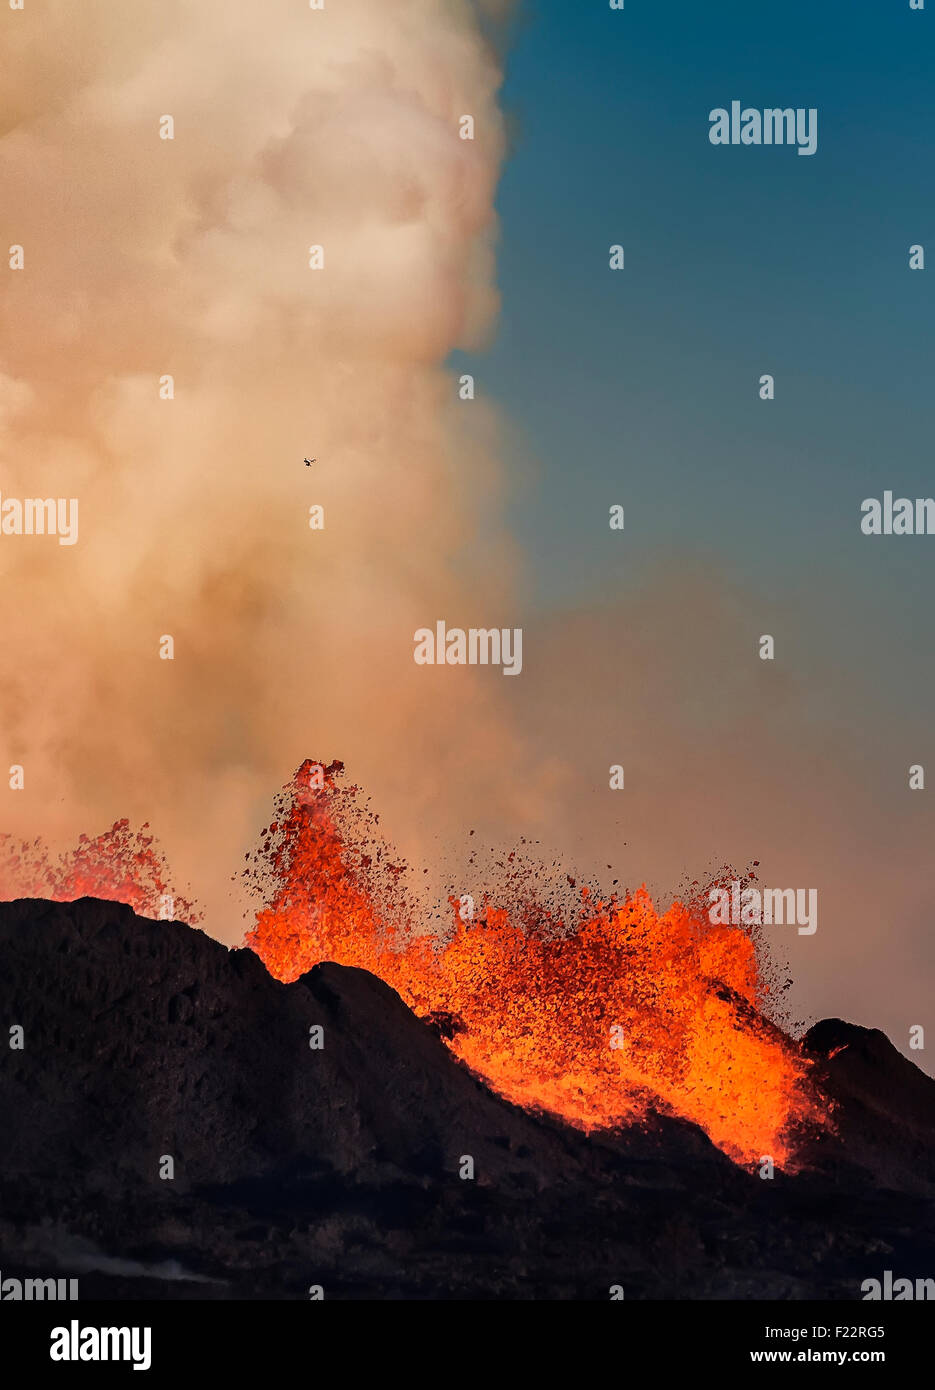 Lava glowing from the eruption at the Holuhraun Fissure. August 29, 2014 a fissure eruption started in Holuhraun - Stock Image